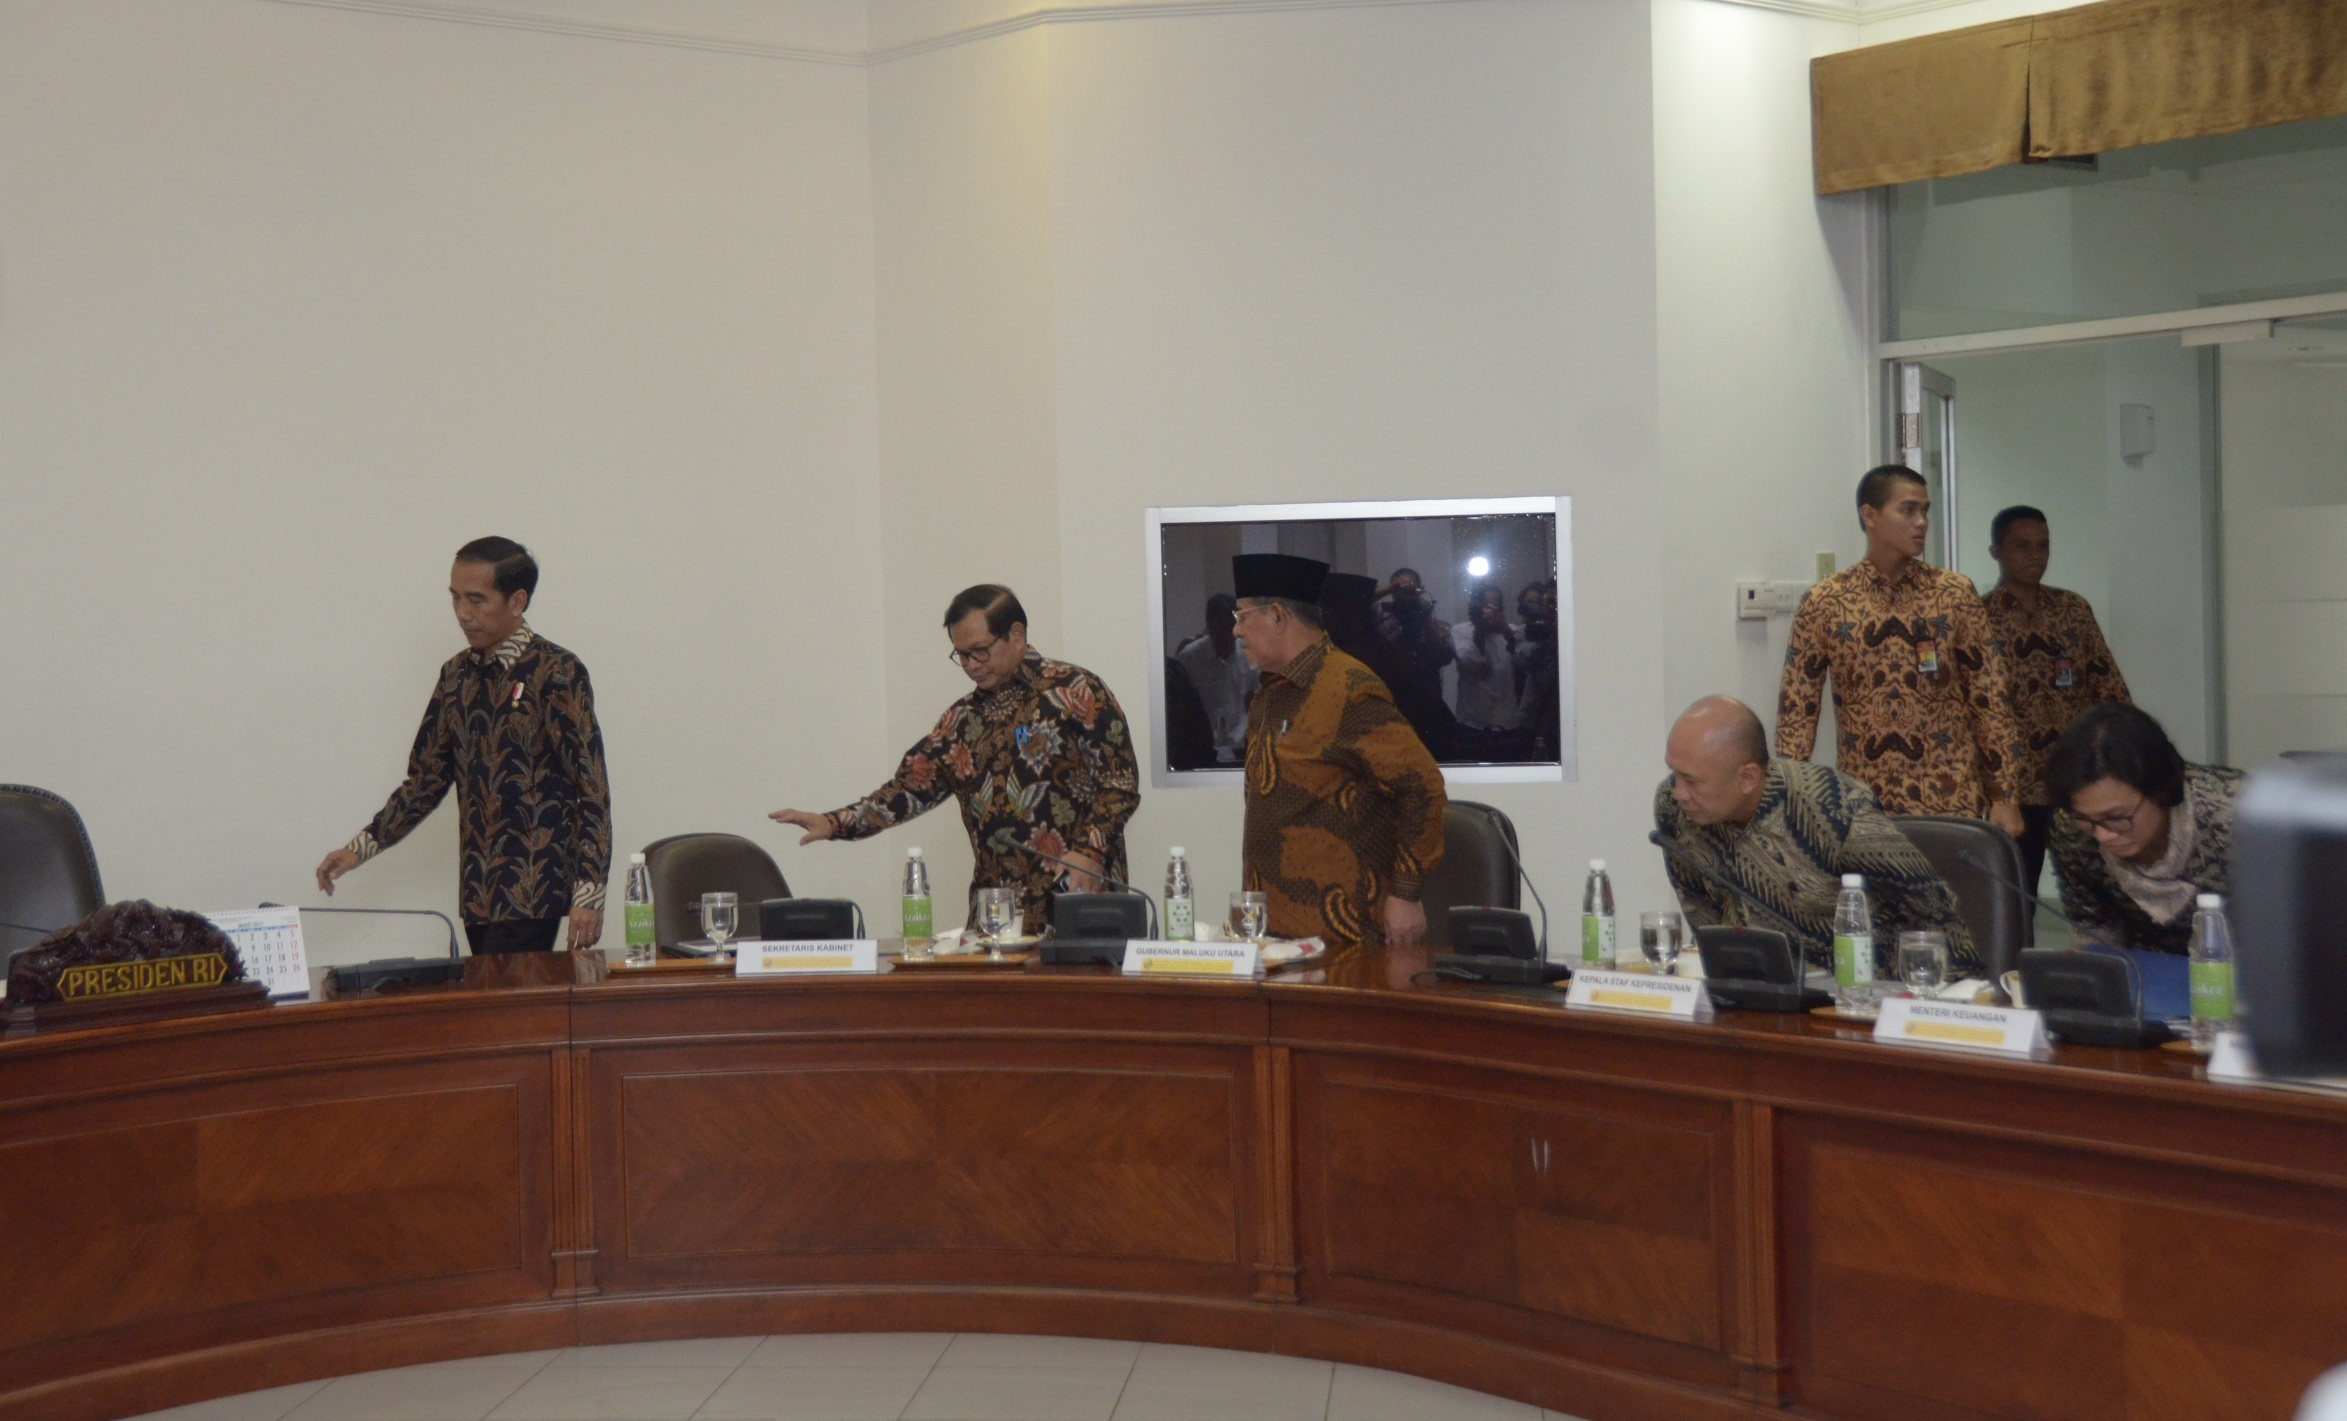 President Jokowi prepares to chair a limited meeting which was attended by Governor of North Maluku Abdul Ghani Kasuba, at the Presidential Office, Jakarta, Tuesday (28/2) afternoon. (Photo: JAY/PR)